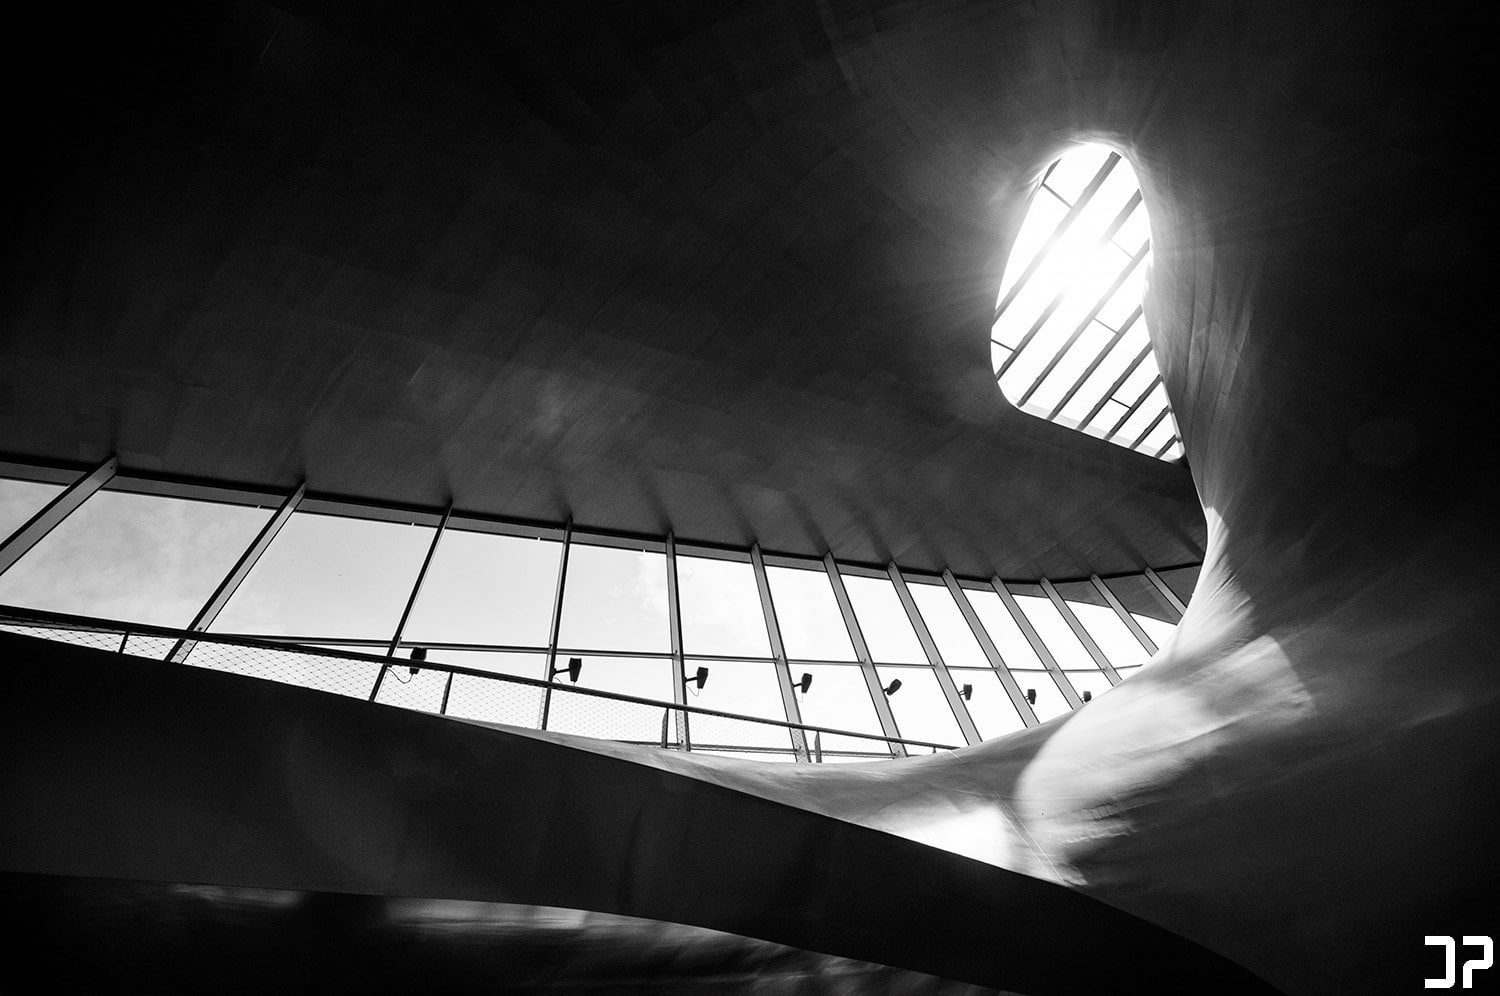 Station Arnhem - Curves III